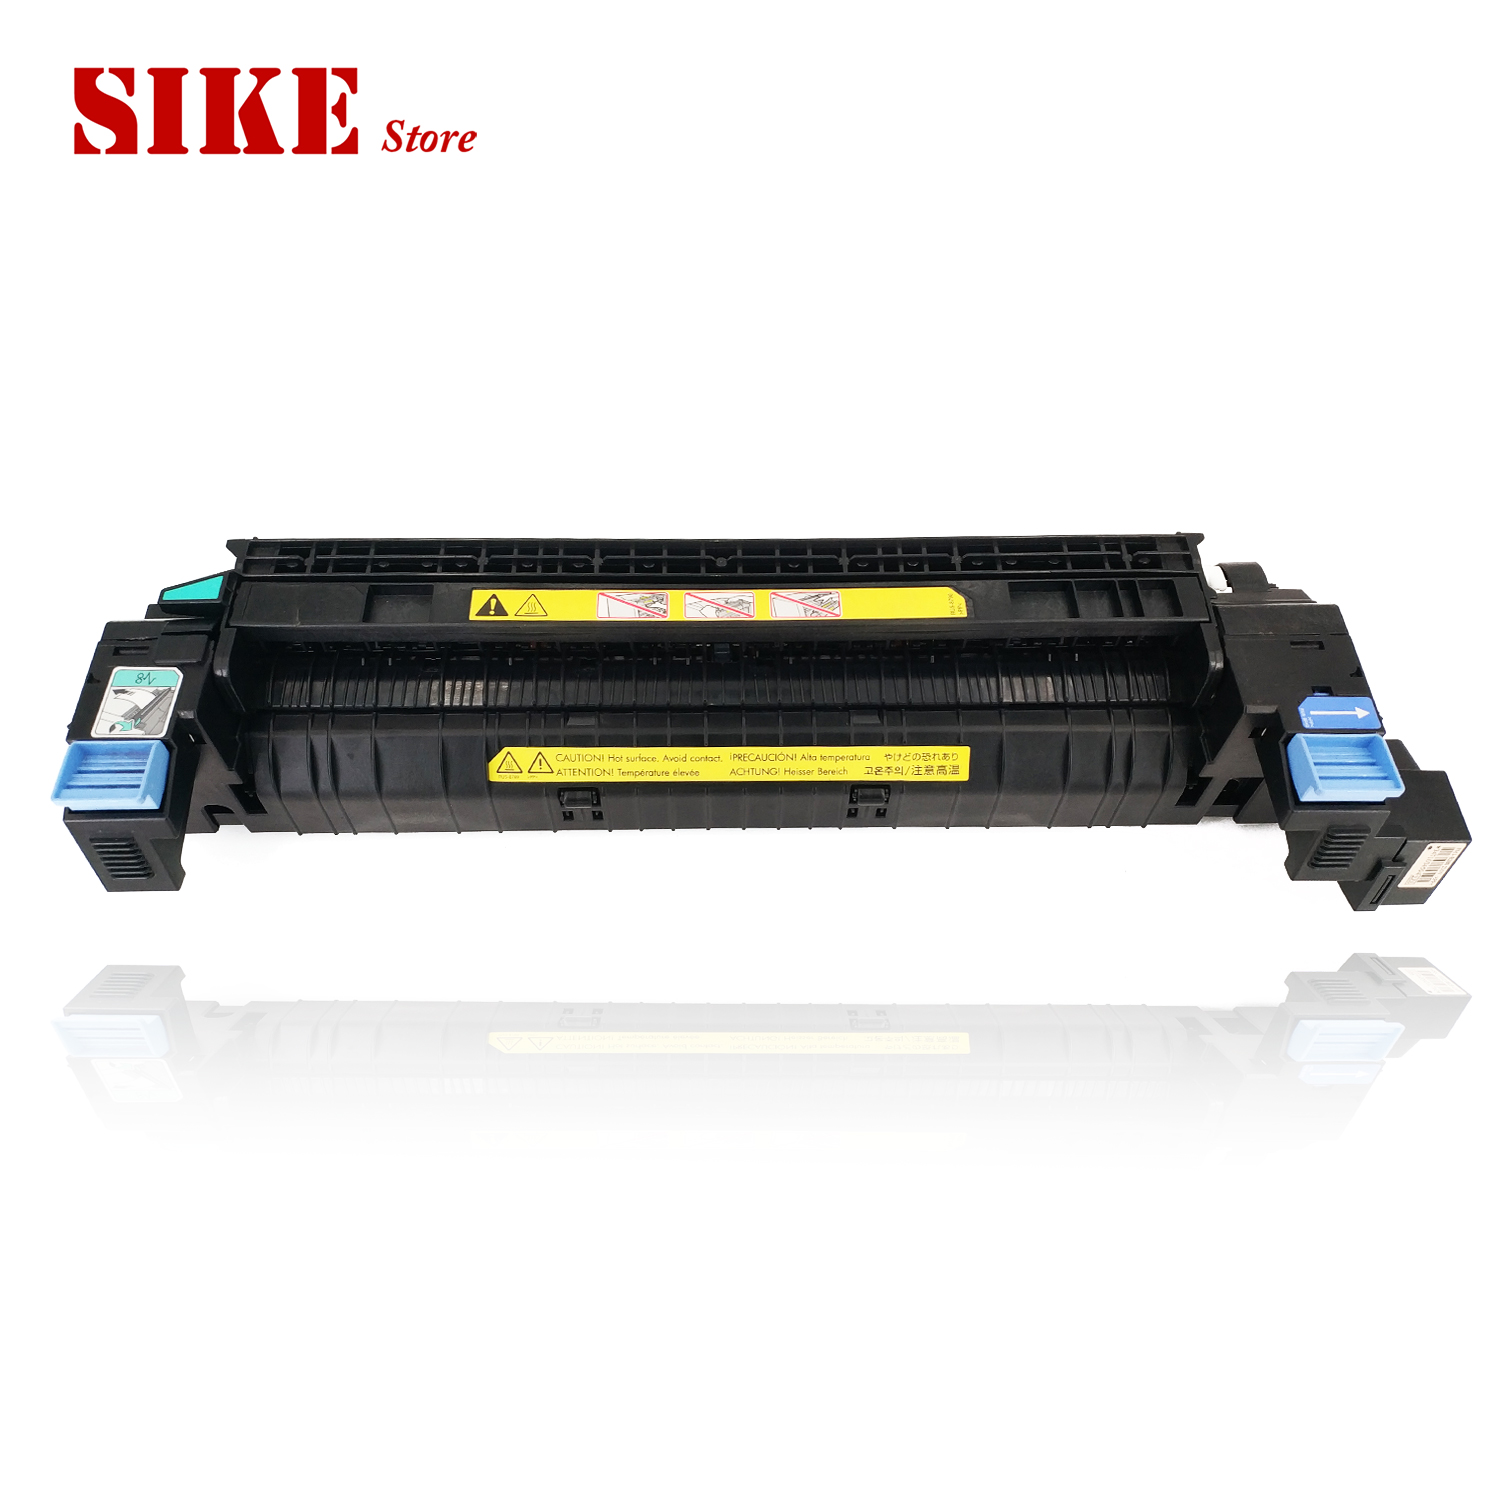 CE710-69001 RM1-6083 CE710-69002 RM1-6095 Fusing Heating Assembly  Use For HP CP5225 CP5225dn CP5225n 5225  Fuser Assembly Unit